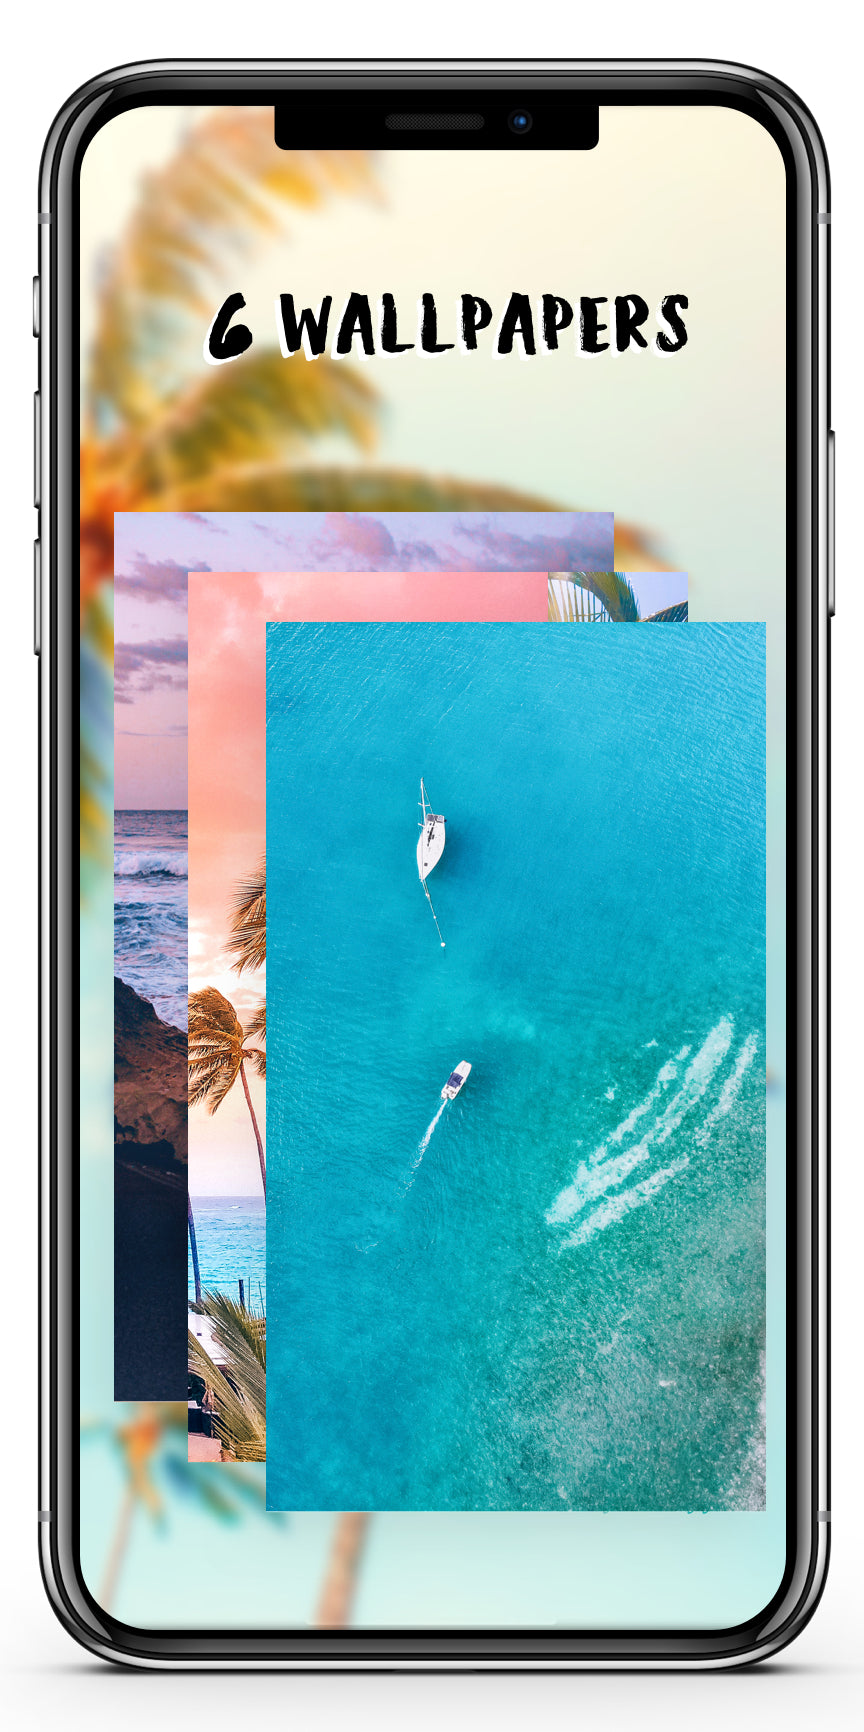 Paradise Dreams Icon Theme Social + Wallpaper Expansion Pack iOS14